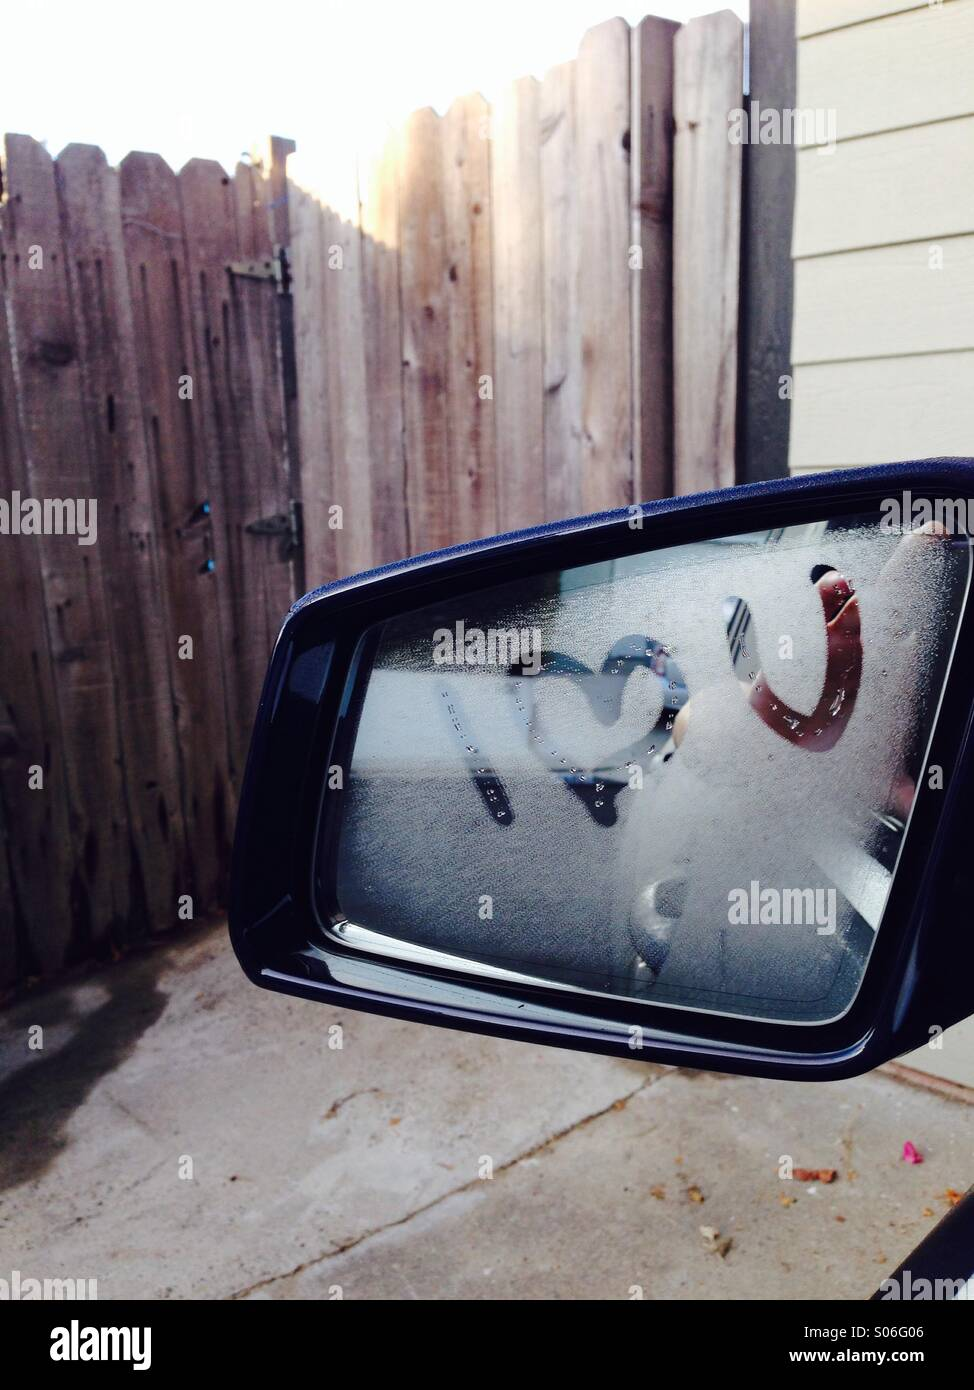 I love you written on a rear view mirror - Stock Image